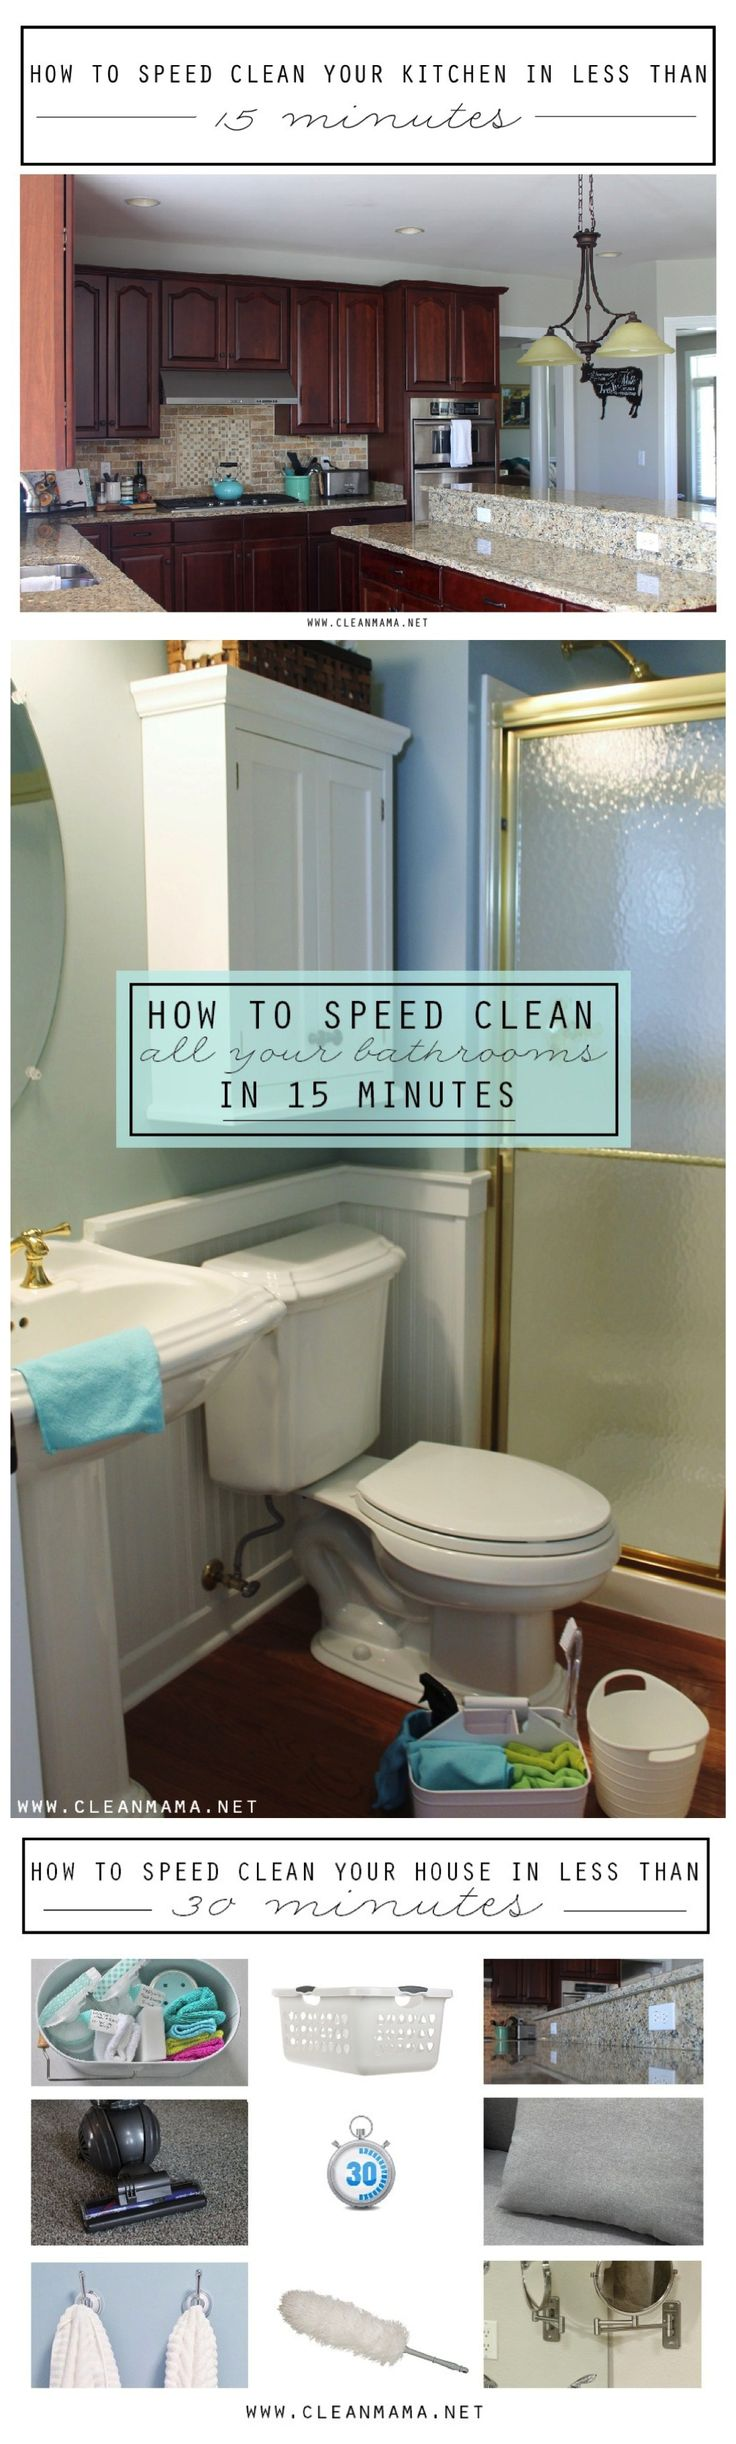 Check out these fantastic routines designed to help you clean SUPER fast!